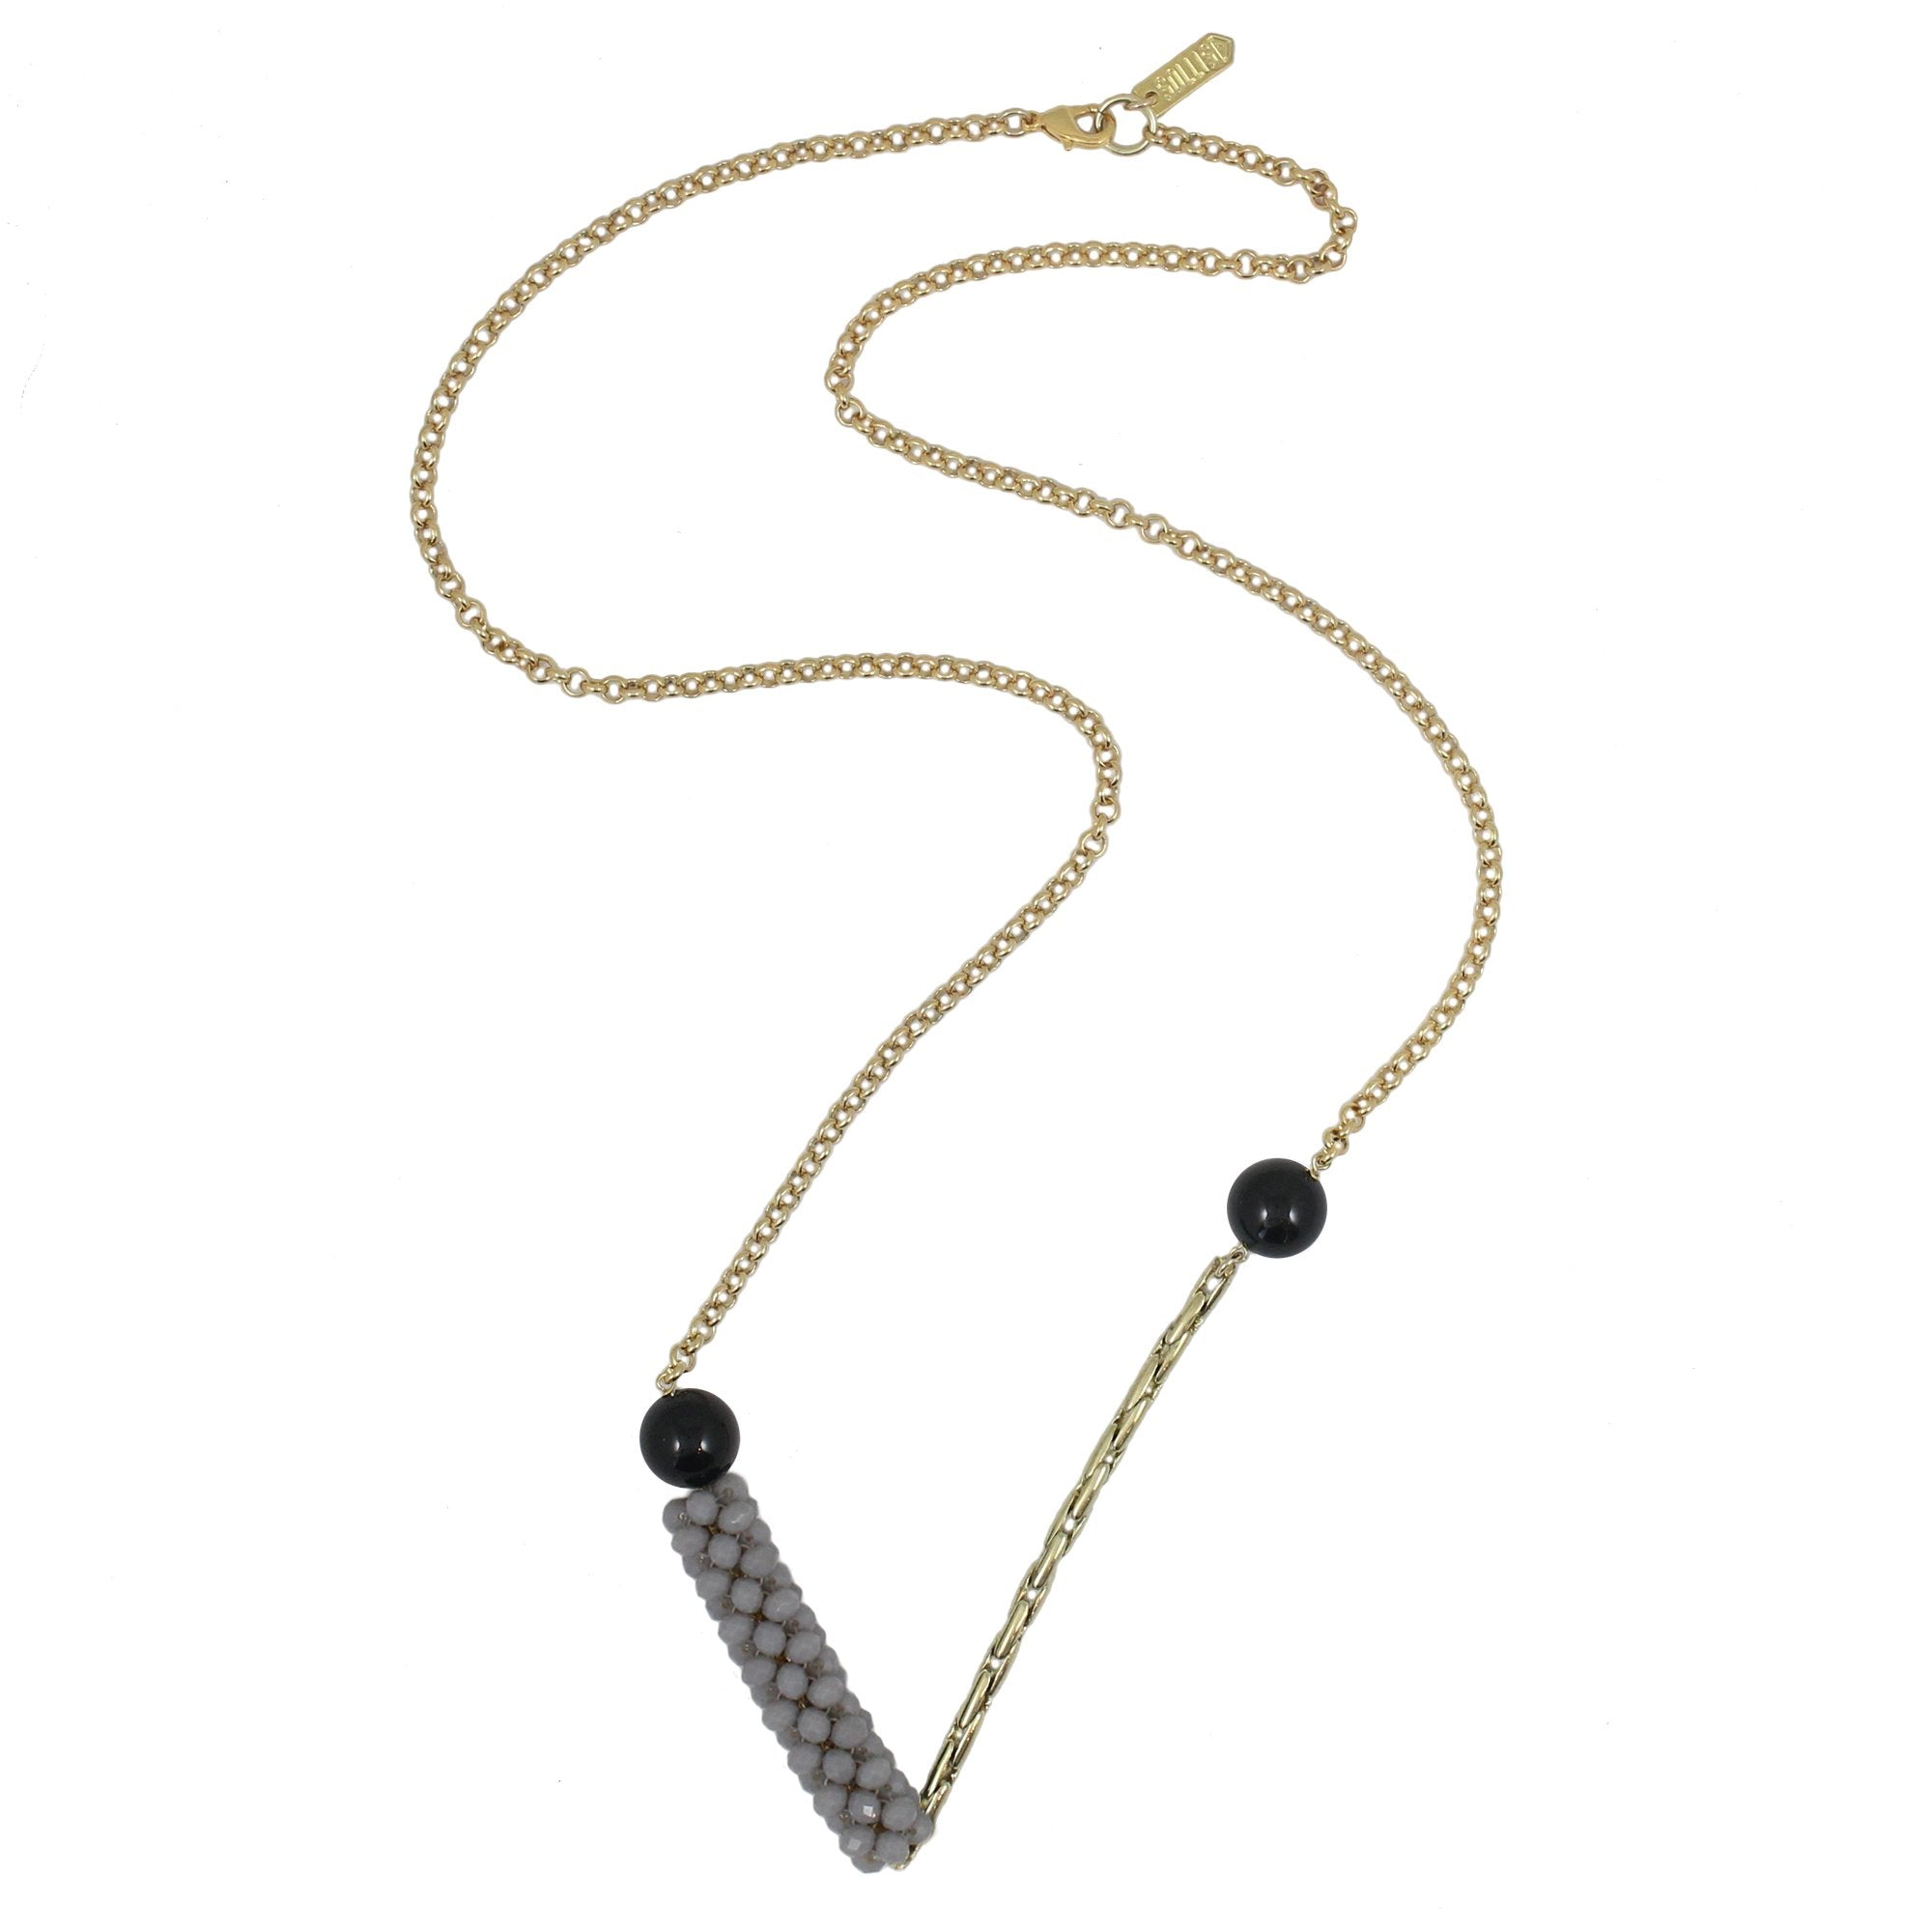 TOG necklace - 40% OFF